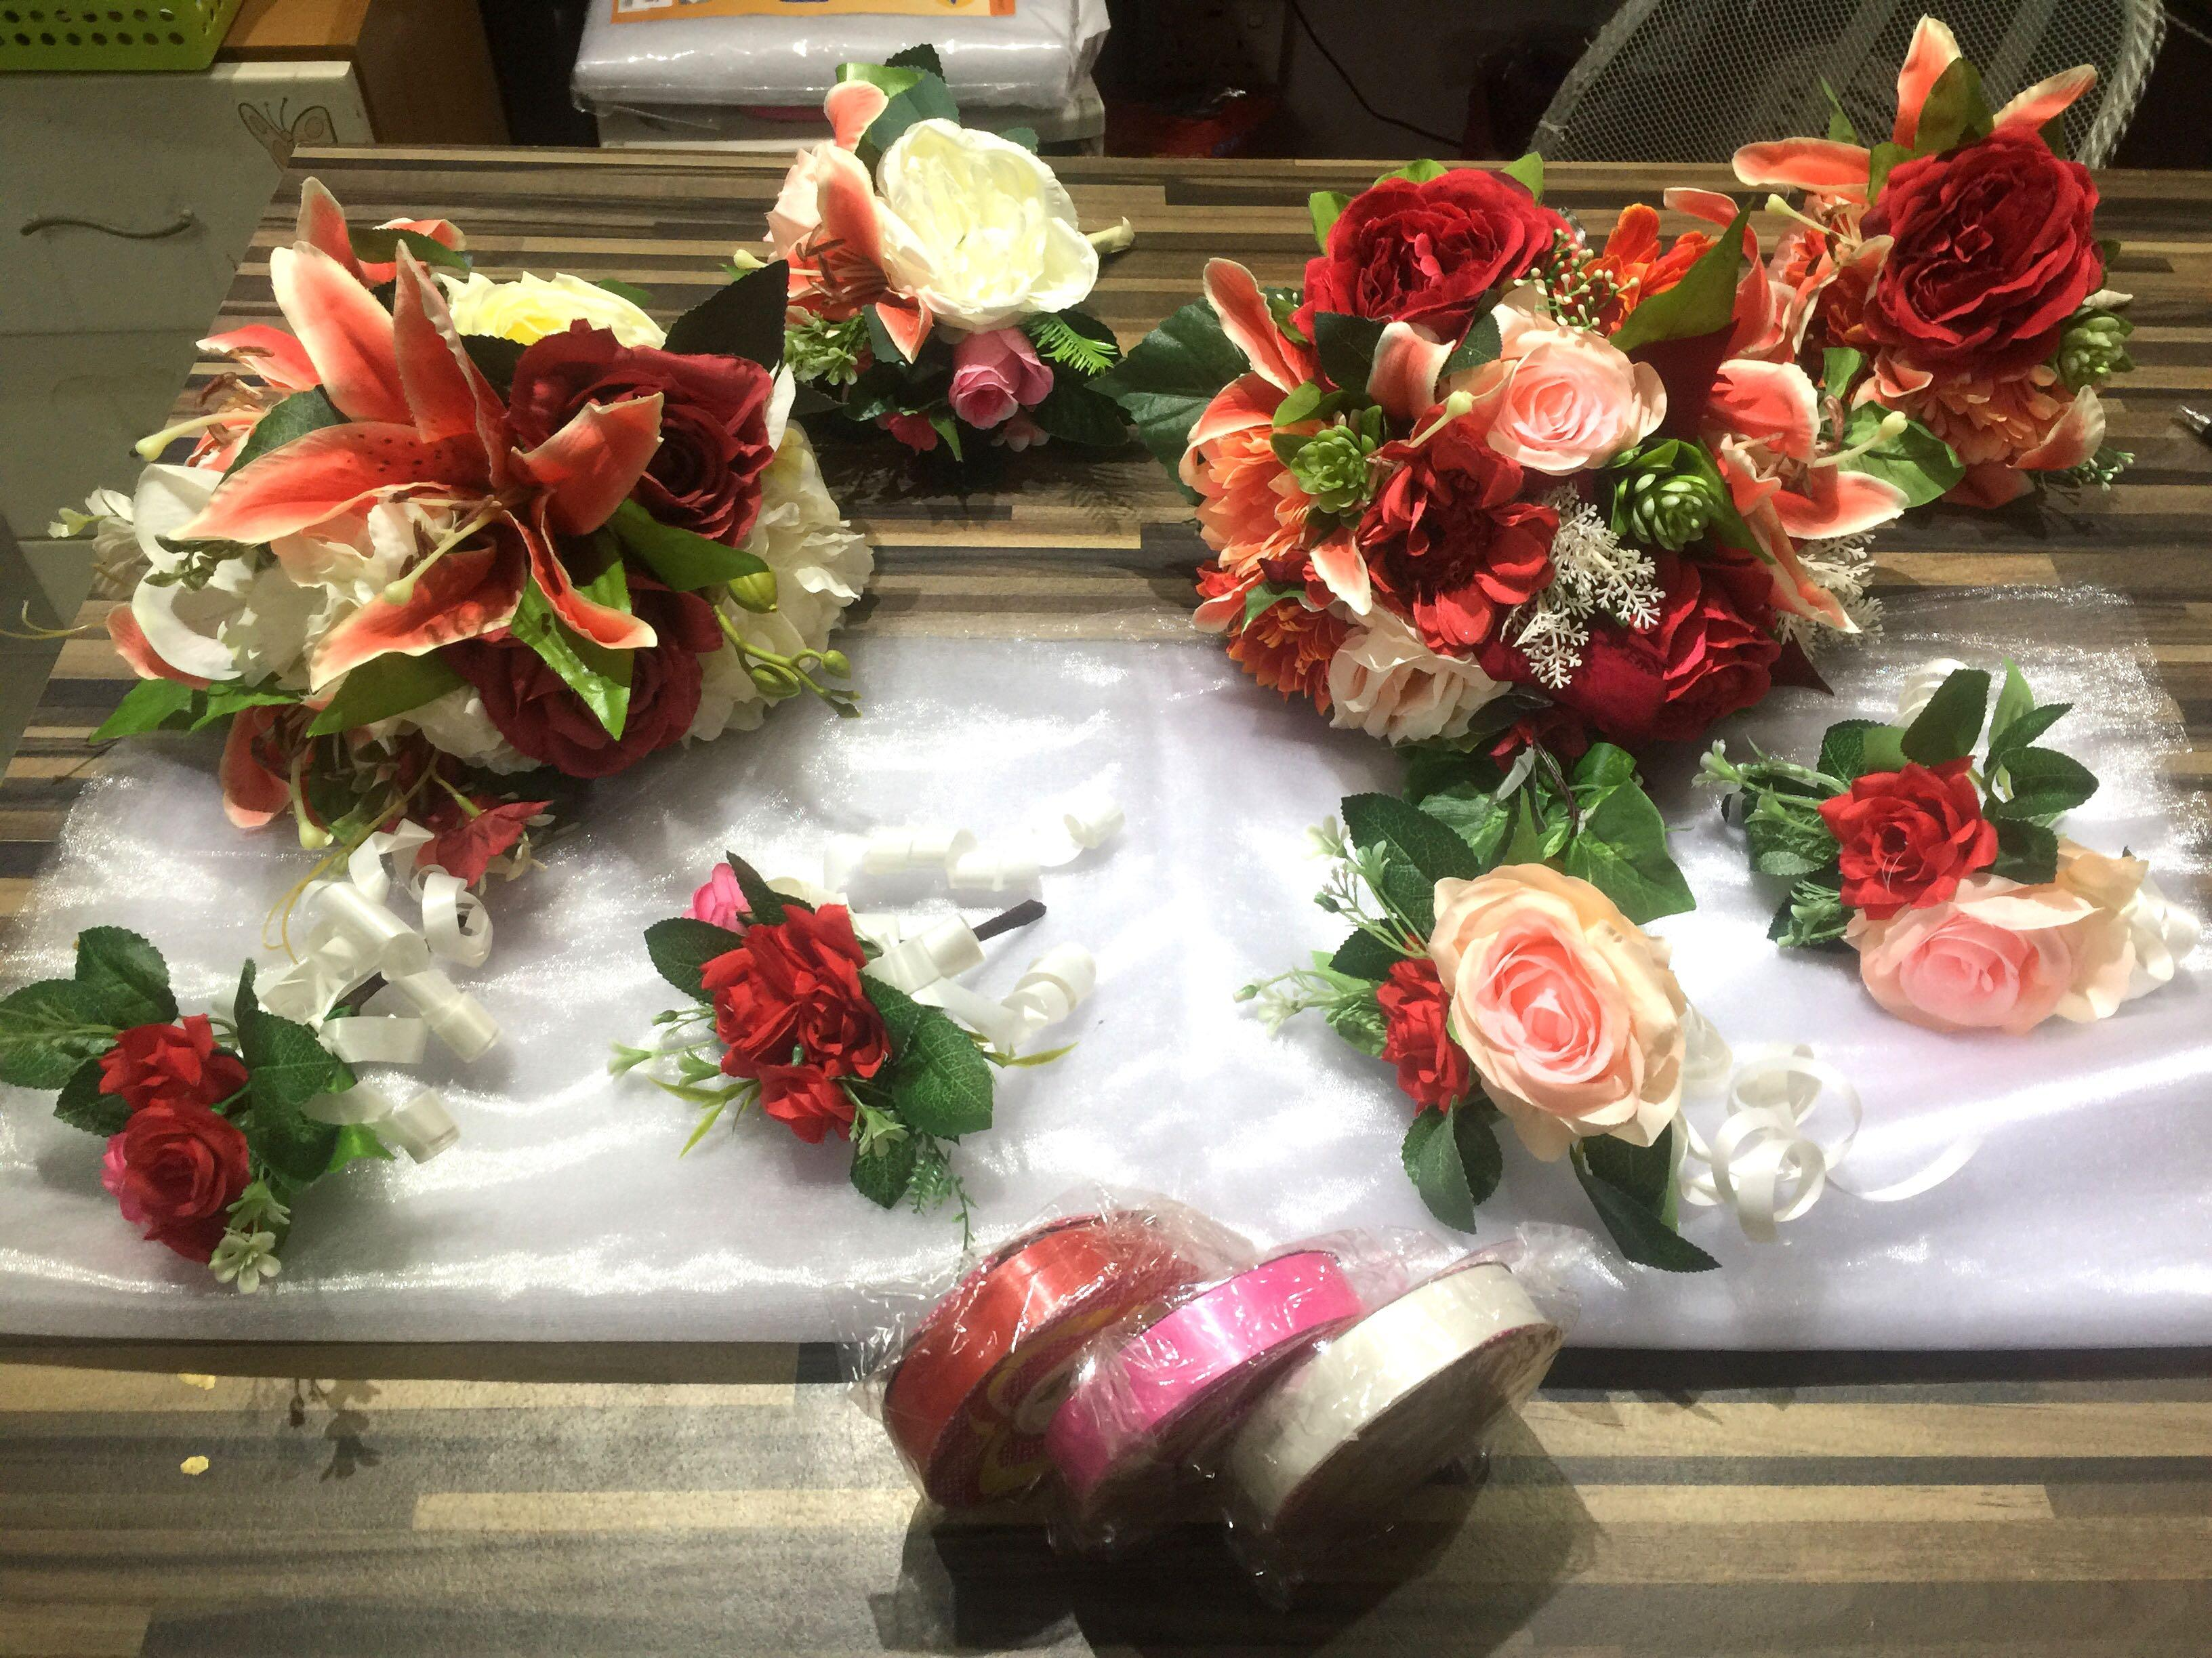 Wedding Decoration Material For Sale  from media.karousell.com